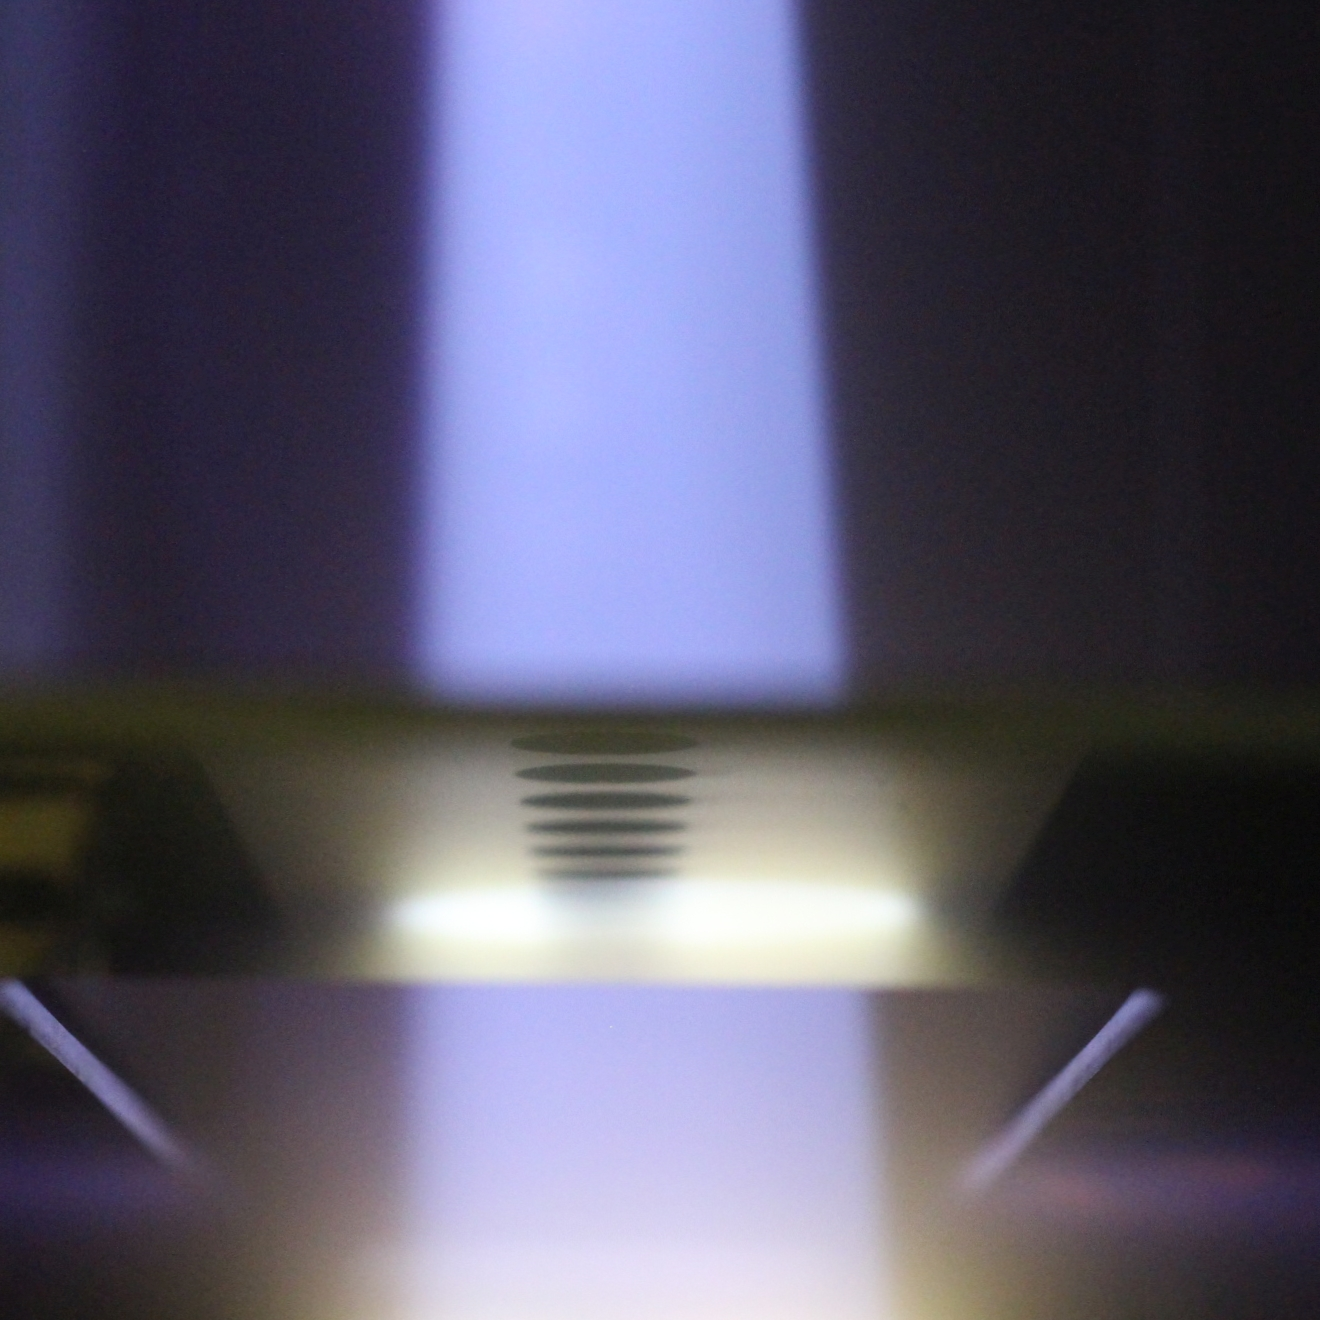 Photo of linear ion beam of 150x500 mm, seen from the 150 mm side